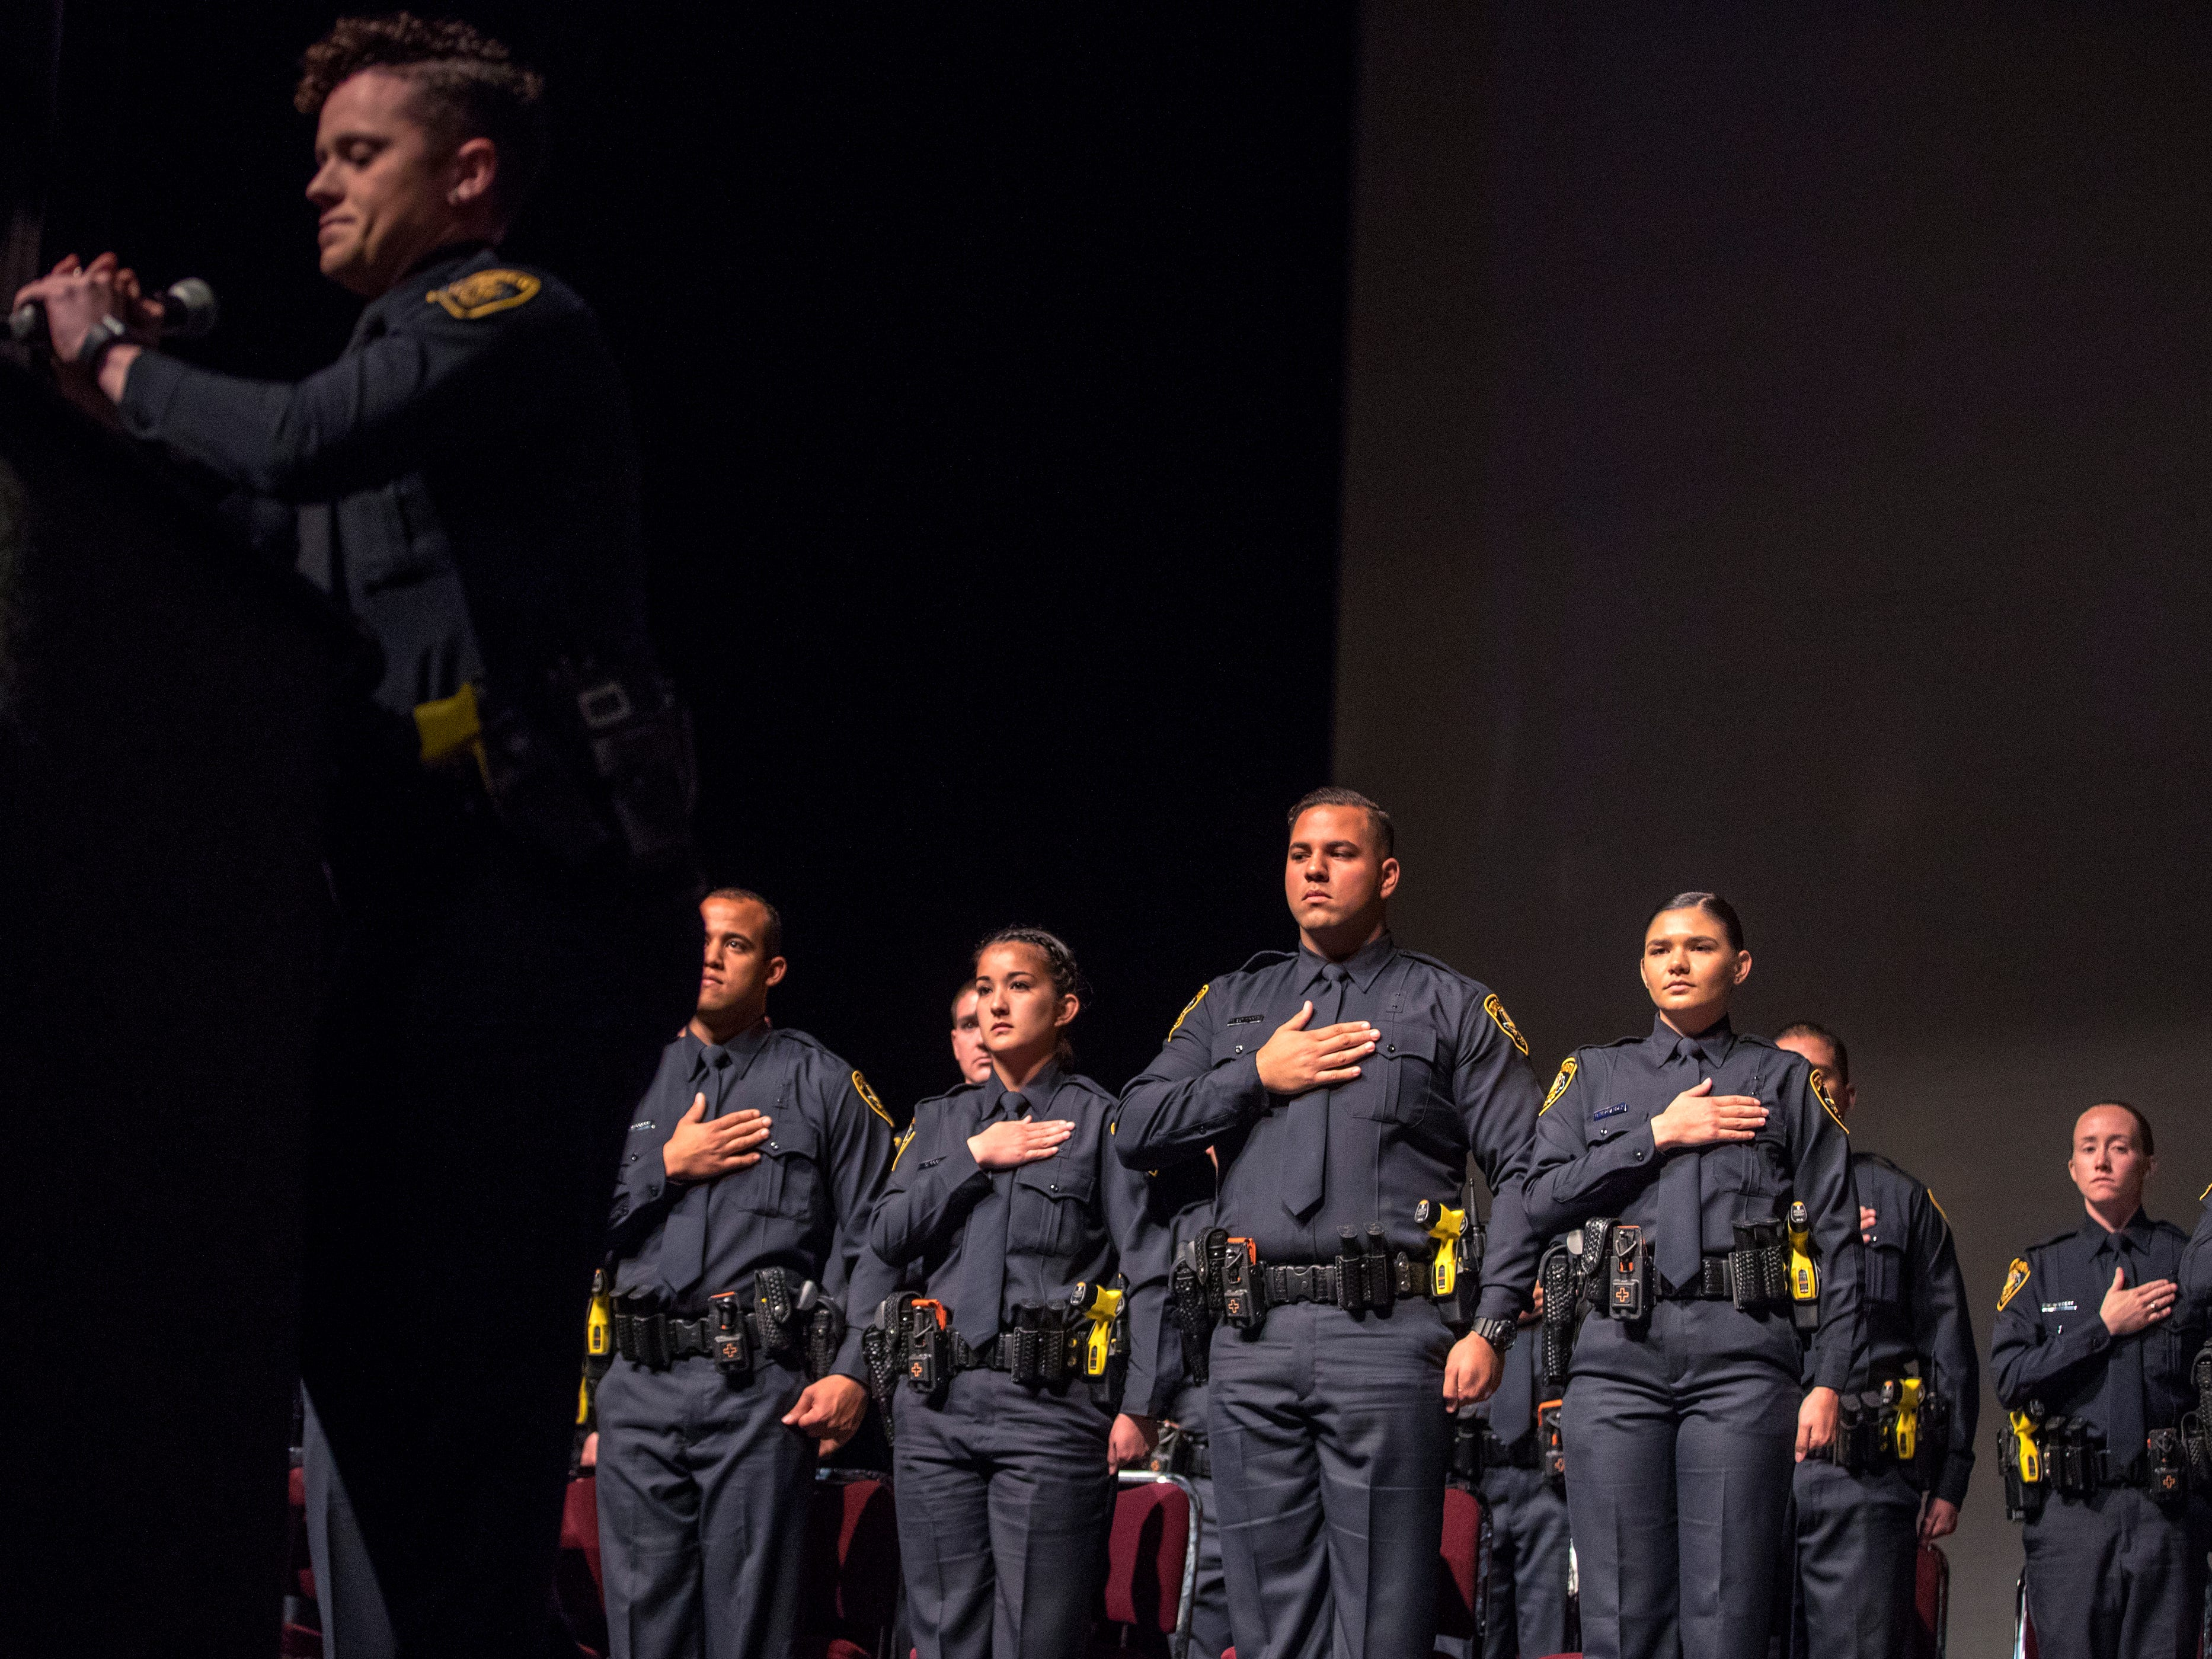 The 77th Corpus Christi Police Department Police Academy Graduates place their hands over their hearts during the National Anthem during their graduation ceremony at Selena Auditorium on Friday, February, 8, 2019.